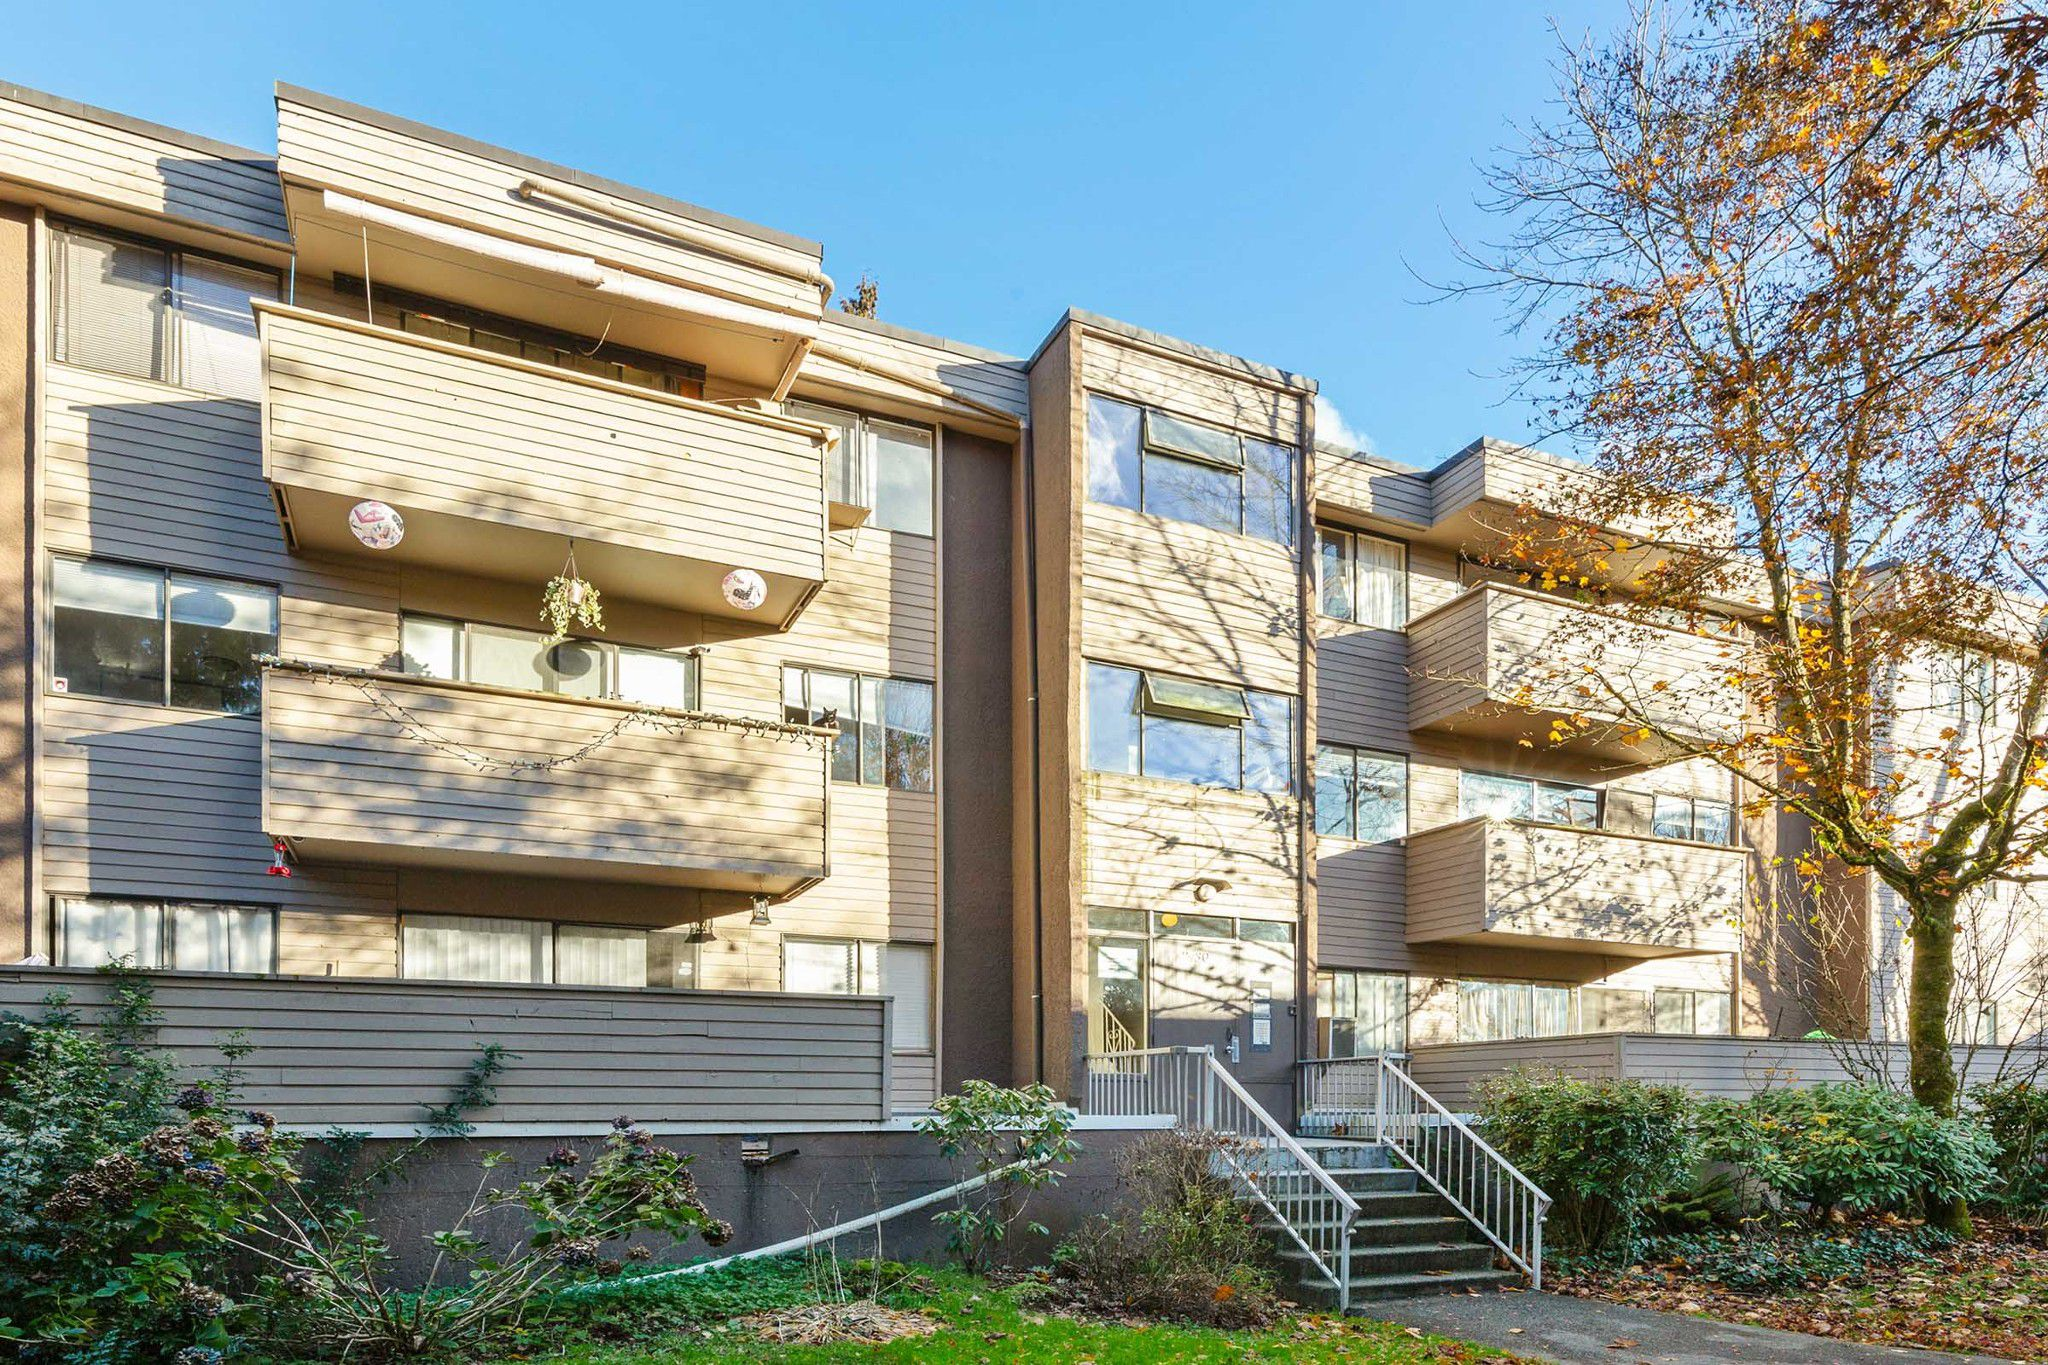 """Main Photo: 24 2430 WILSON Avenue in Port Coquitlam: Central Pt Coquitlam Condo for sale in """"ORCHARD VALLEY"""" : MLS®# R2321065"""